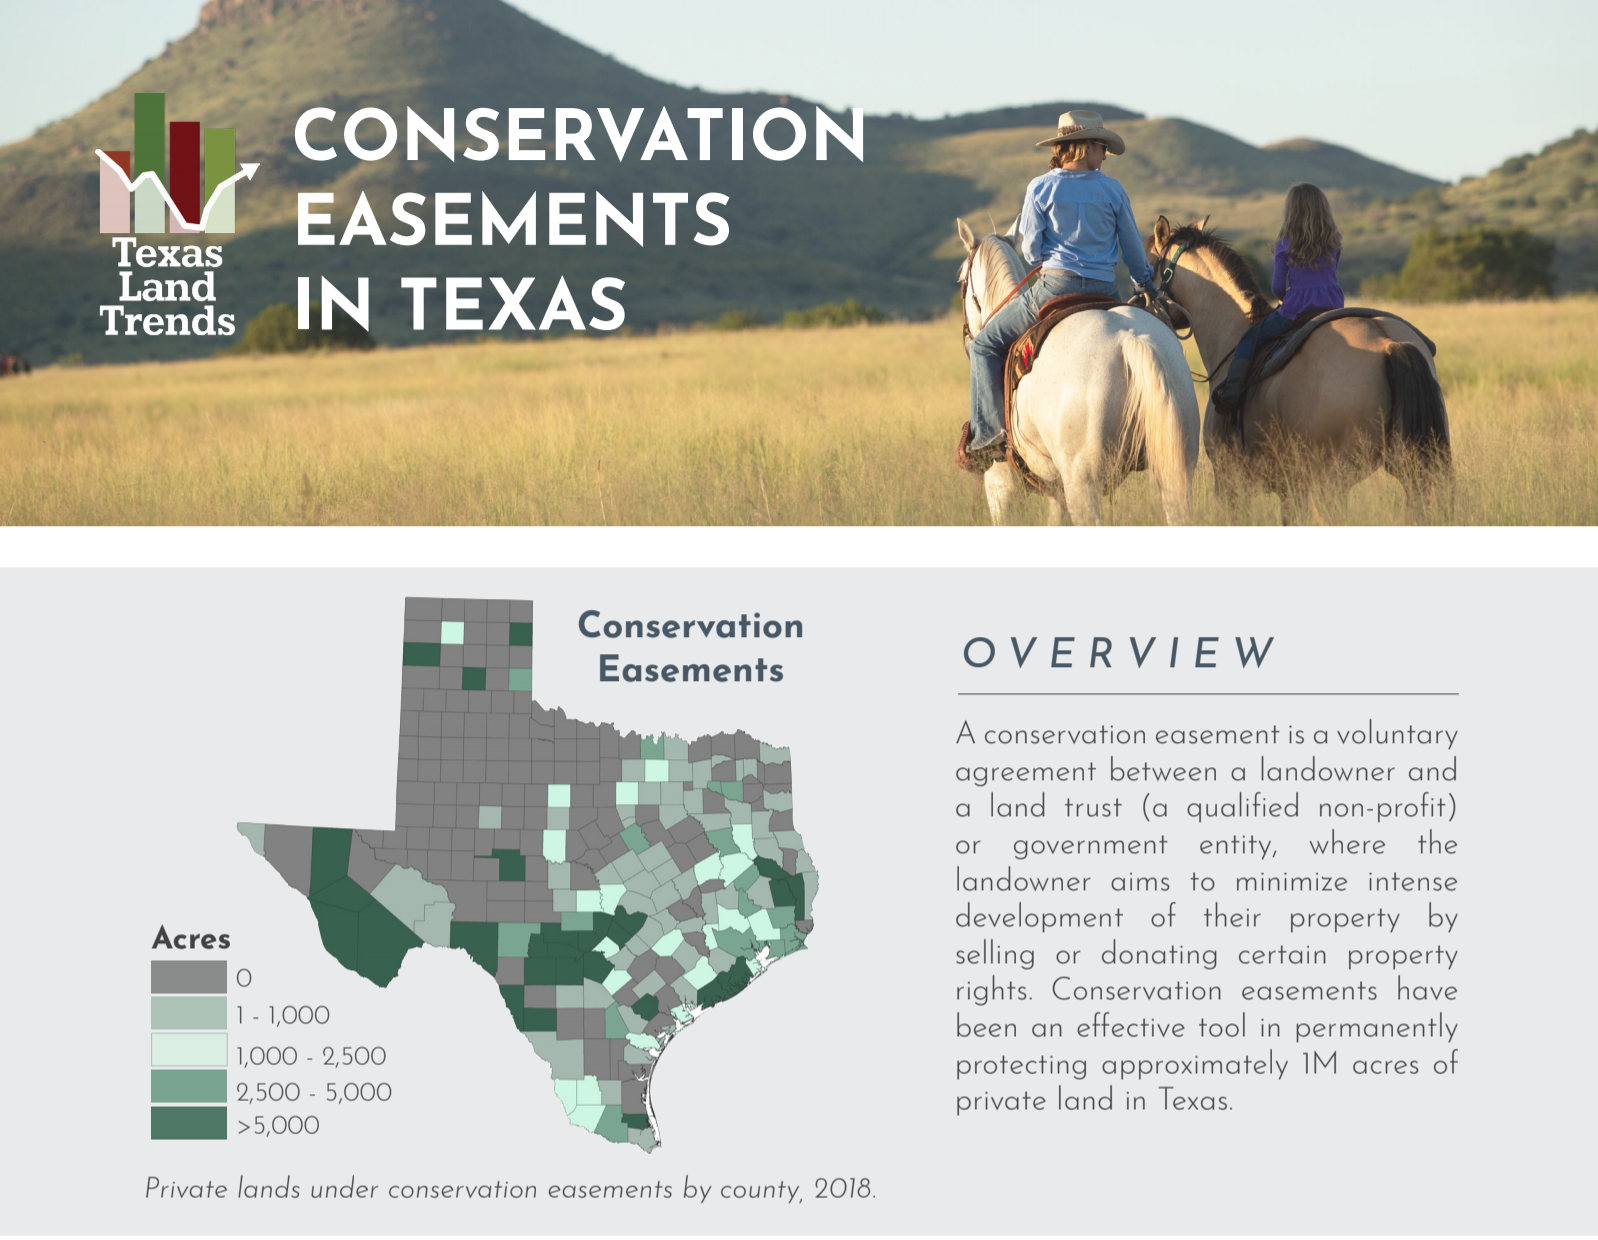 Texas Land Trends & Conservation Easements